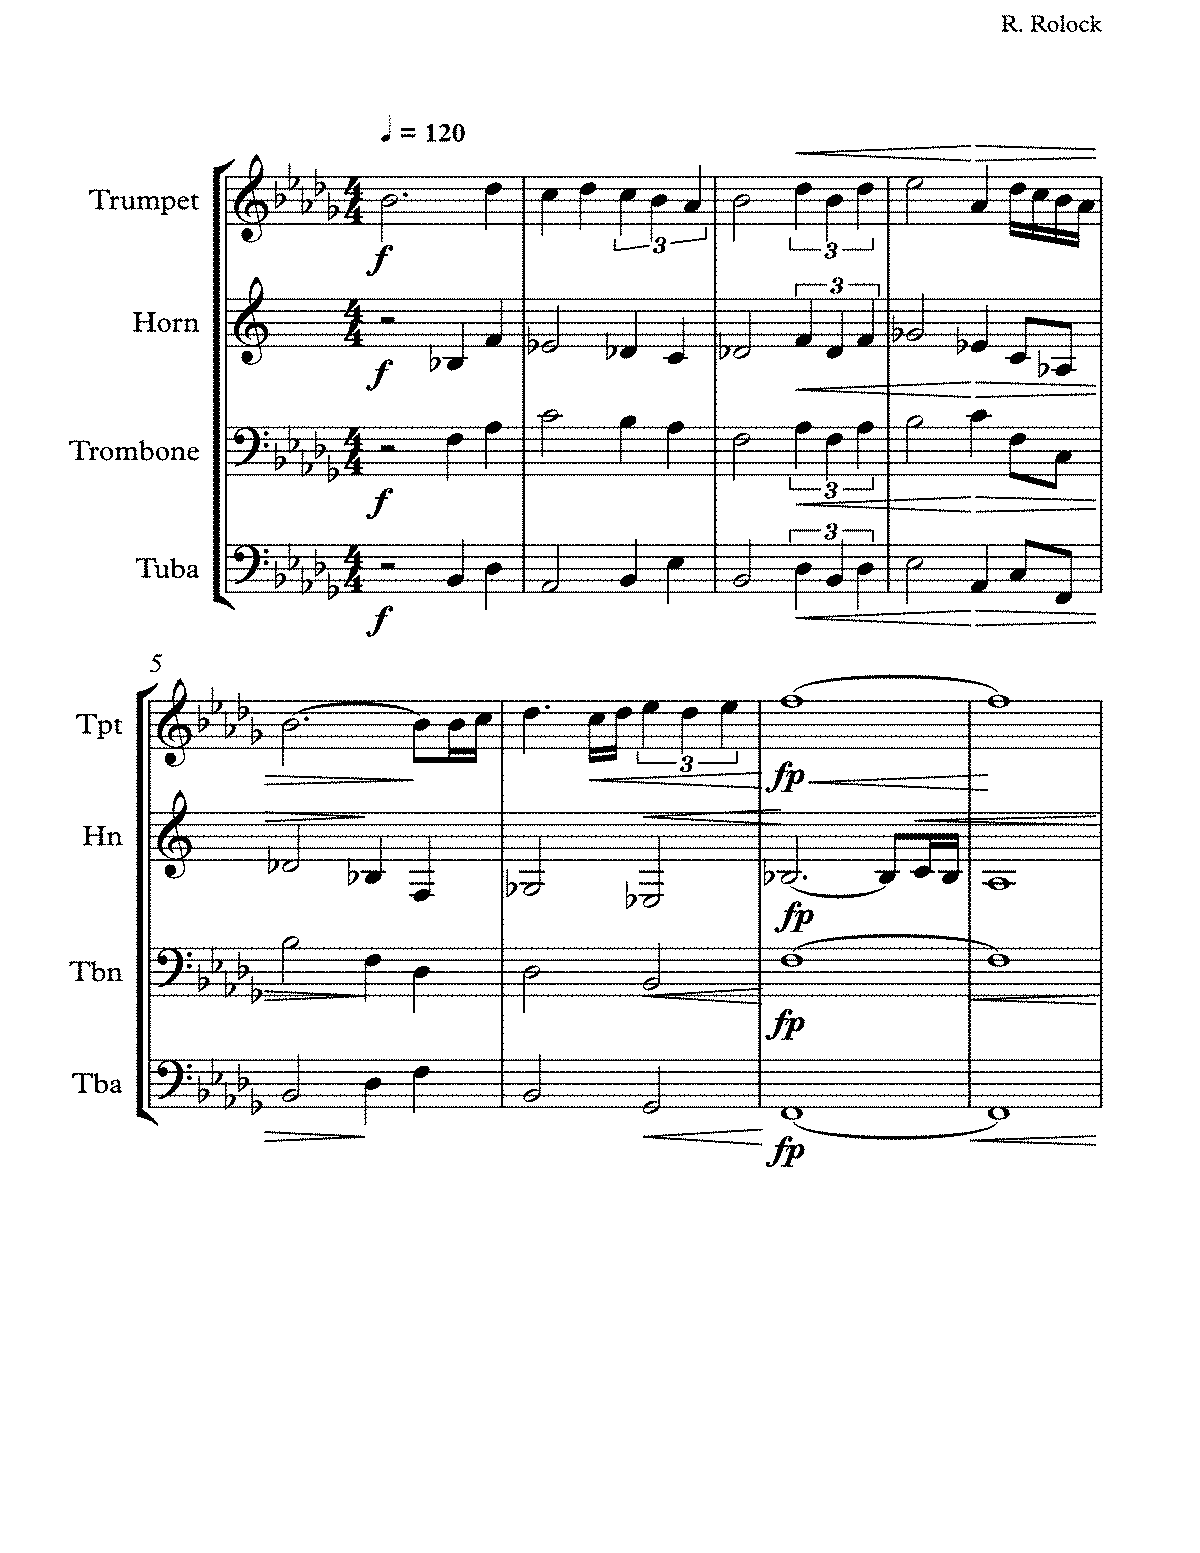 PMLP449573-Brass Quartet 2 - Full Score.pdf